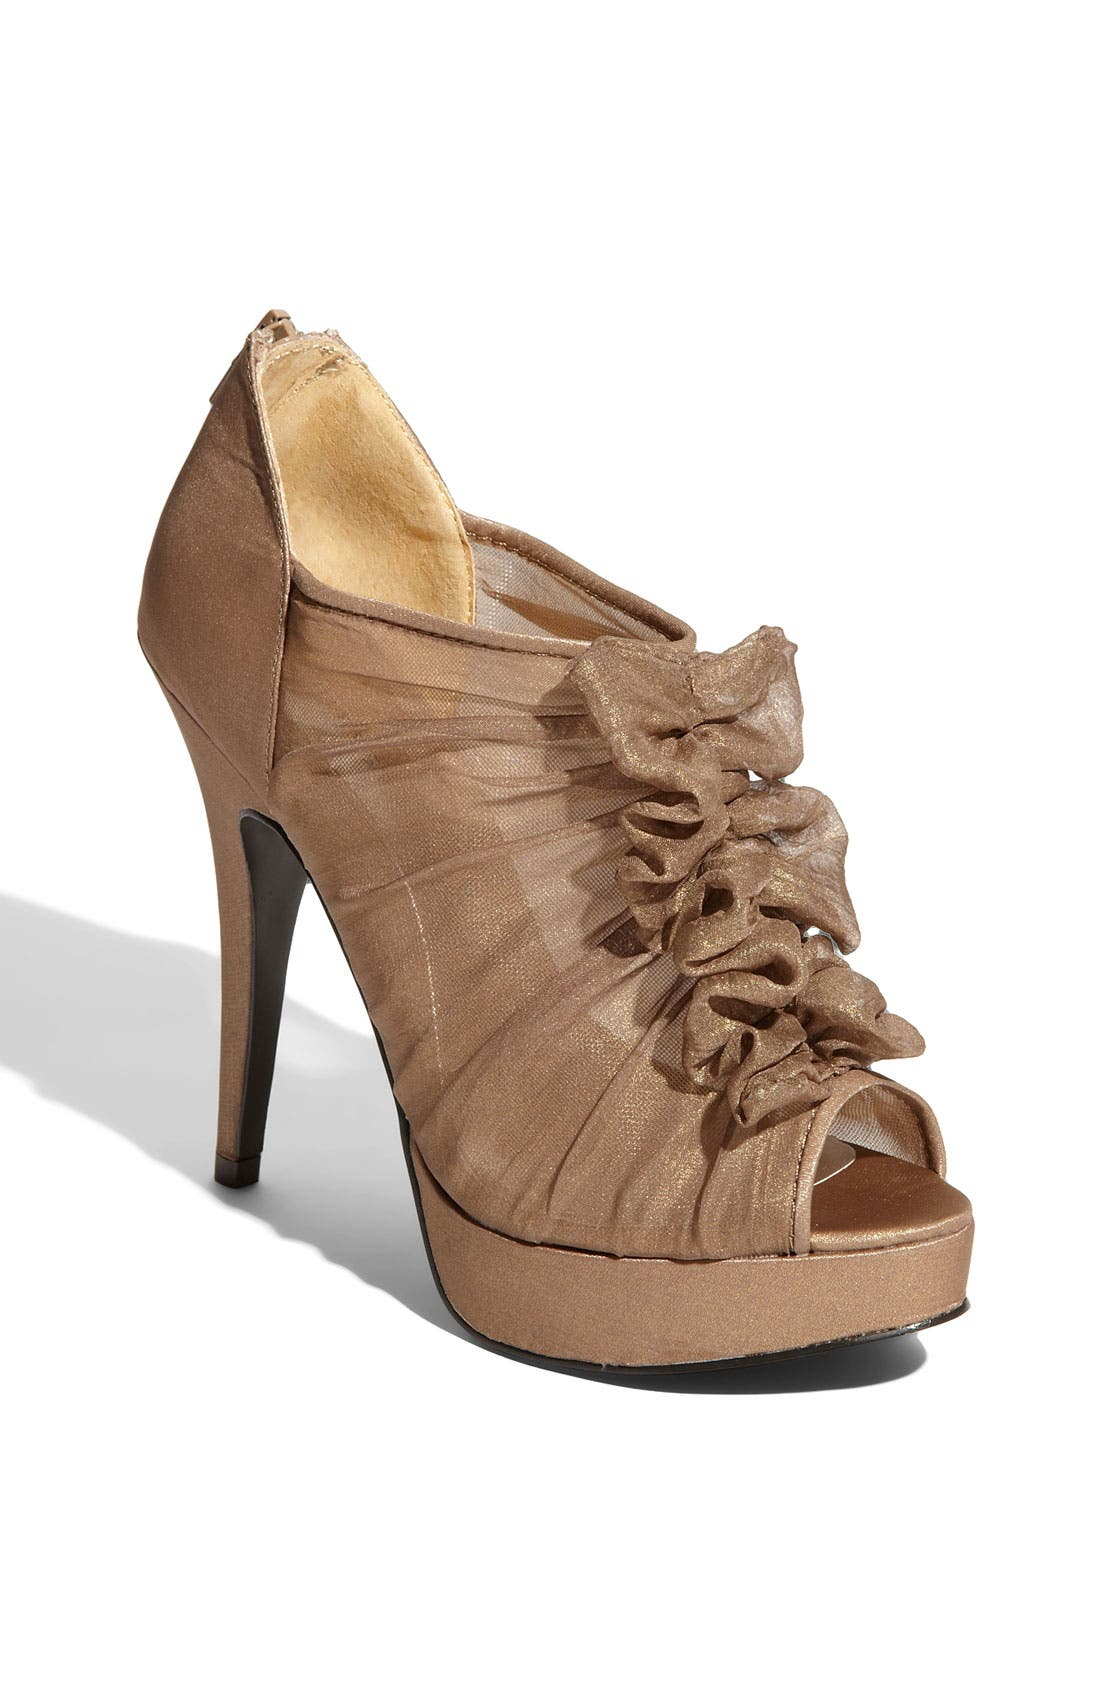 Alternate Image 1 Selected - Chinese Laundry 'Haylie' Pump